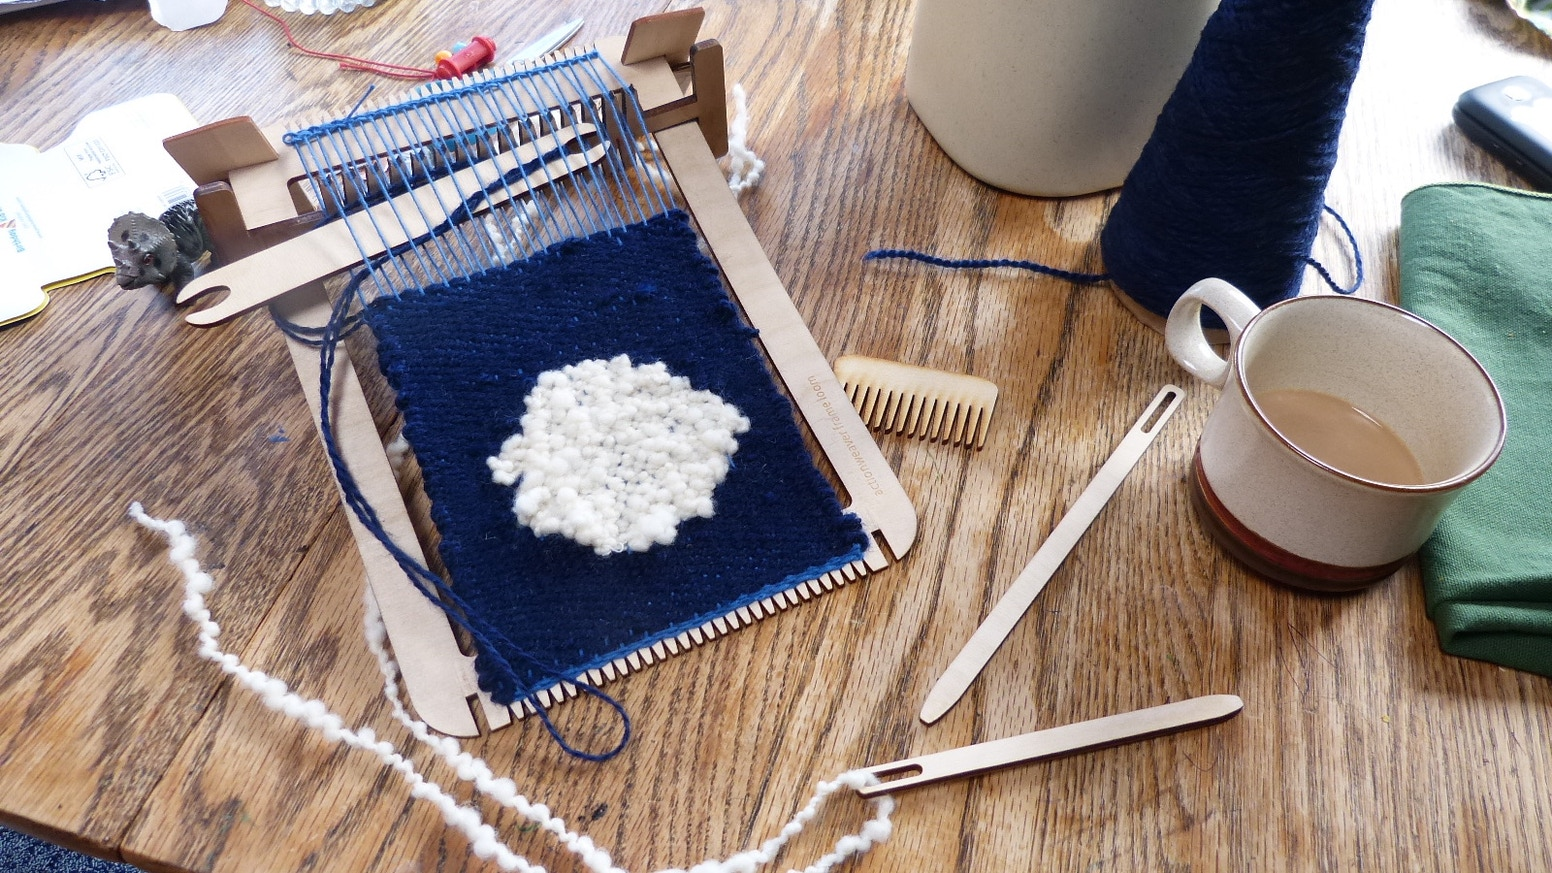 I designed this frame loom to be so easy to use, it's like a sketch pad for weaving! I'll make a weaving on it and send the kit to you! The first big push is over, now you can get a loom on my website, link below!